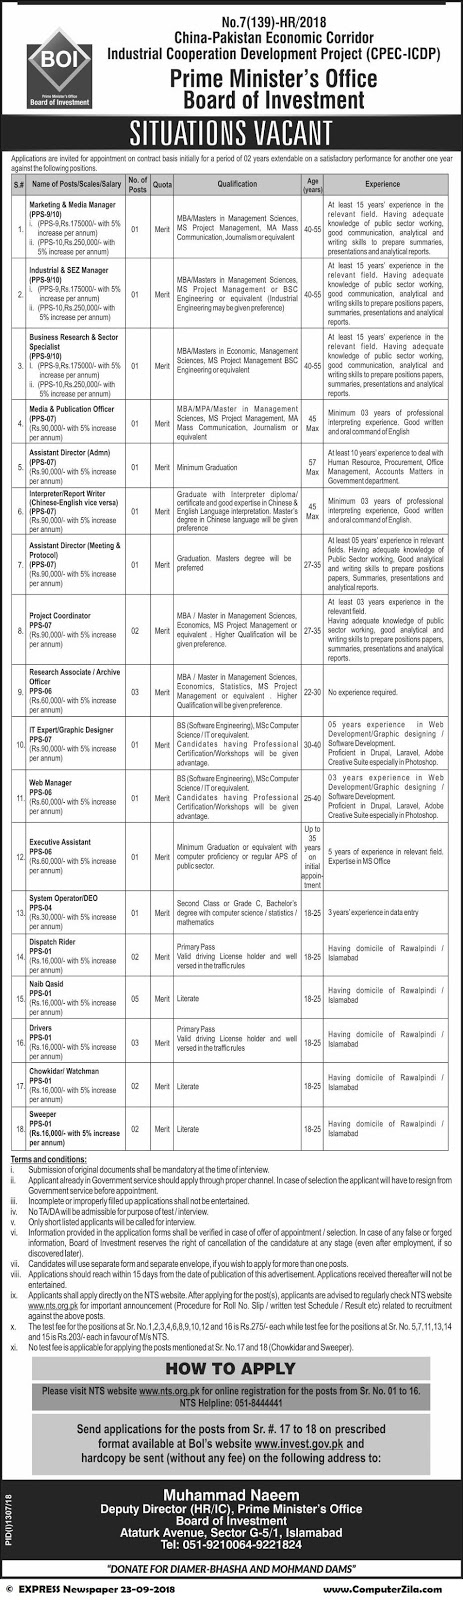 Situations Vacant at Prime Minister's Office Board of Investment